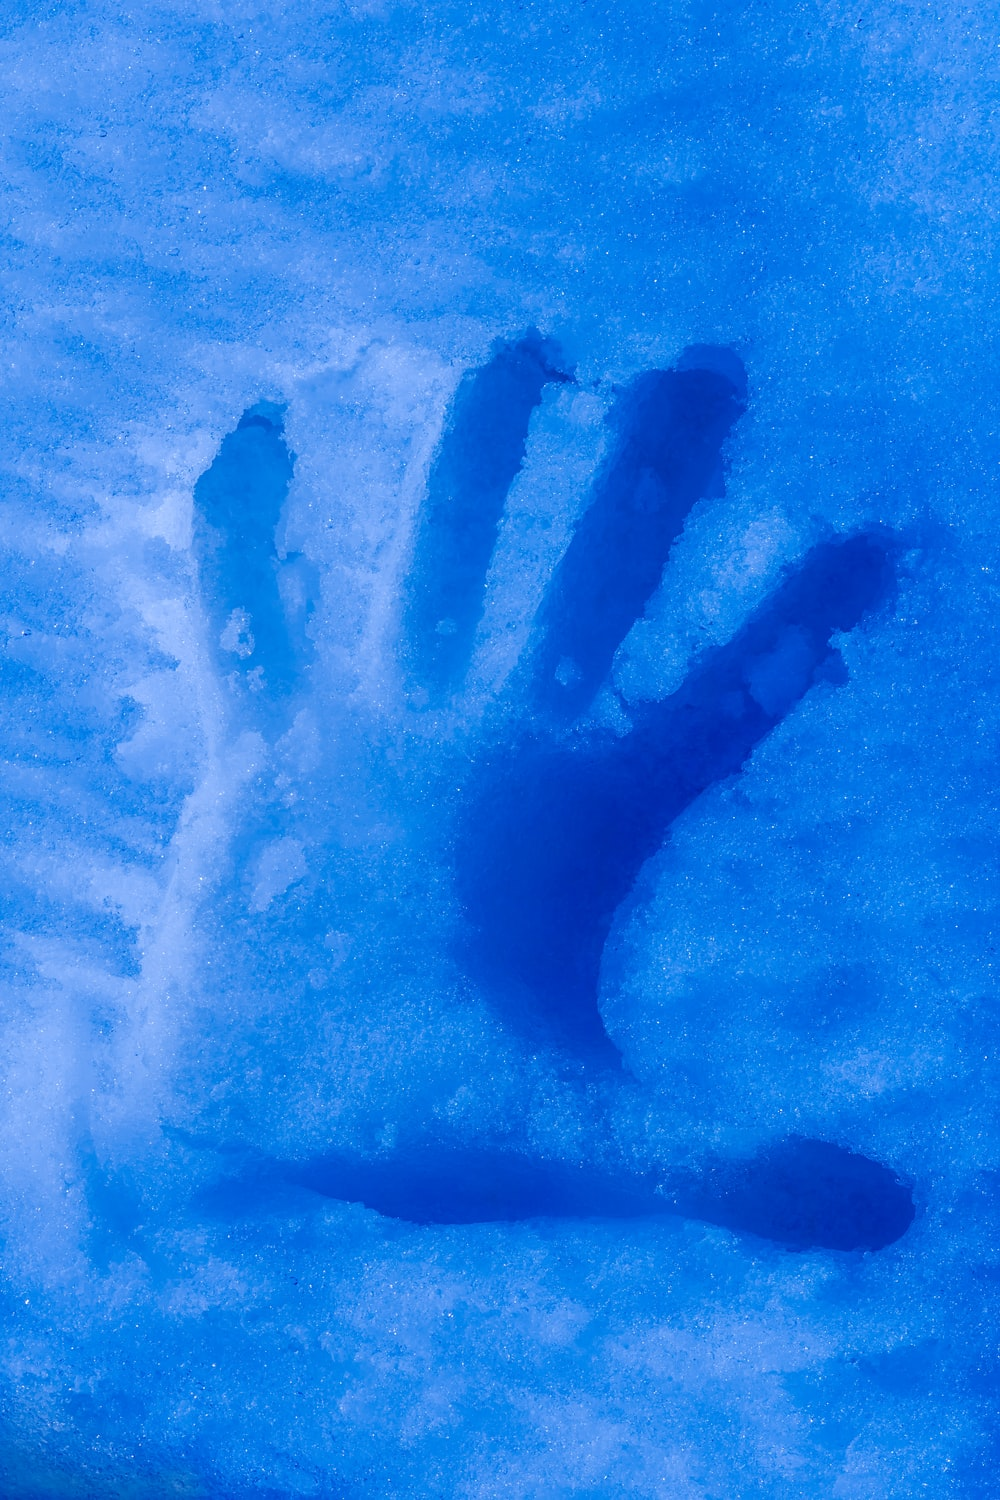 left hand on icy surface